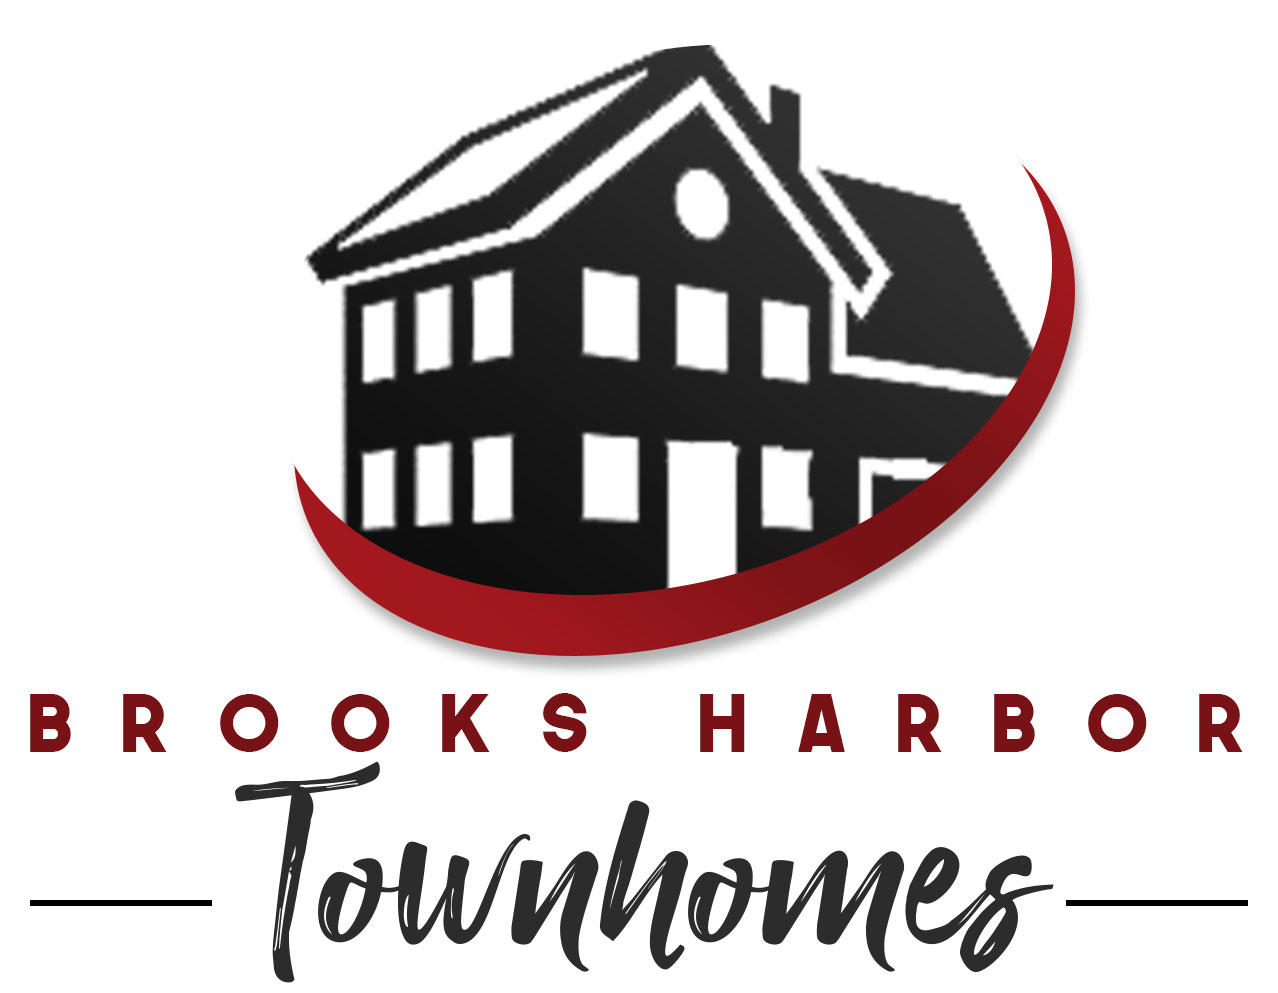 Brooks Harbor Townhomes